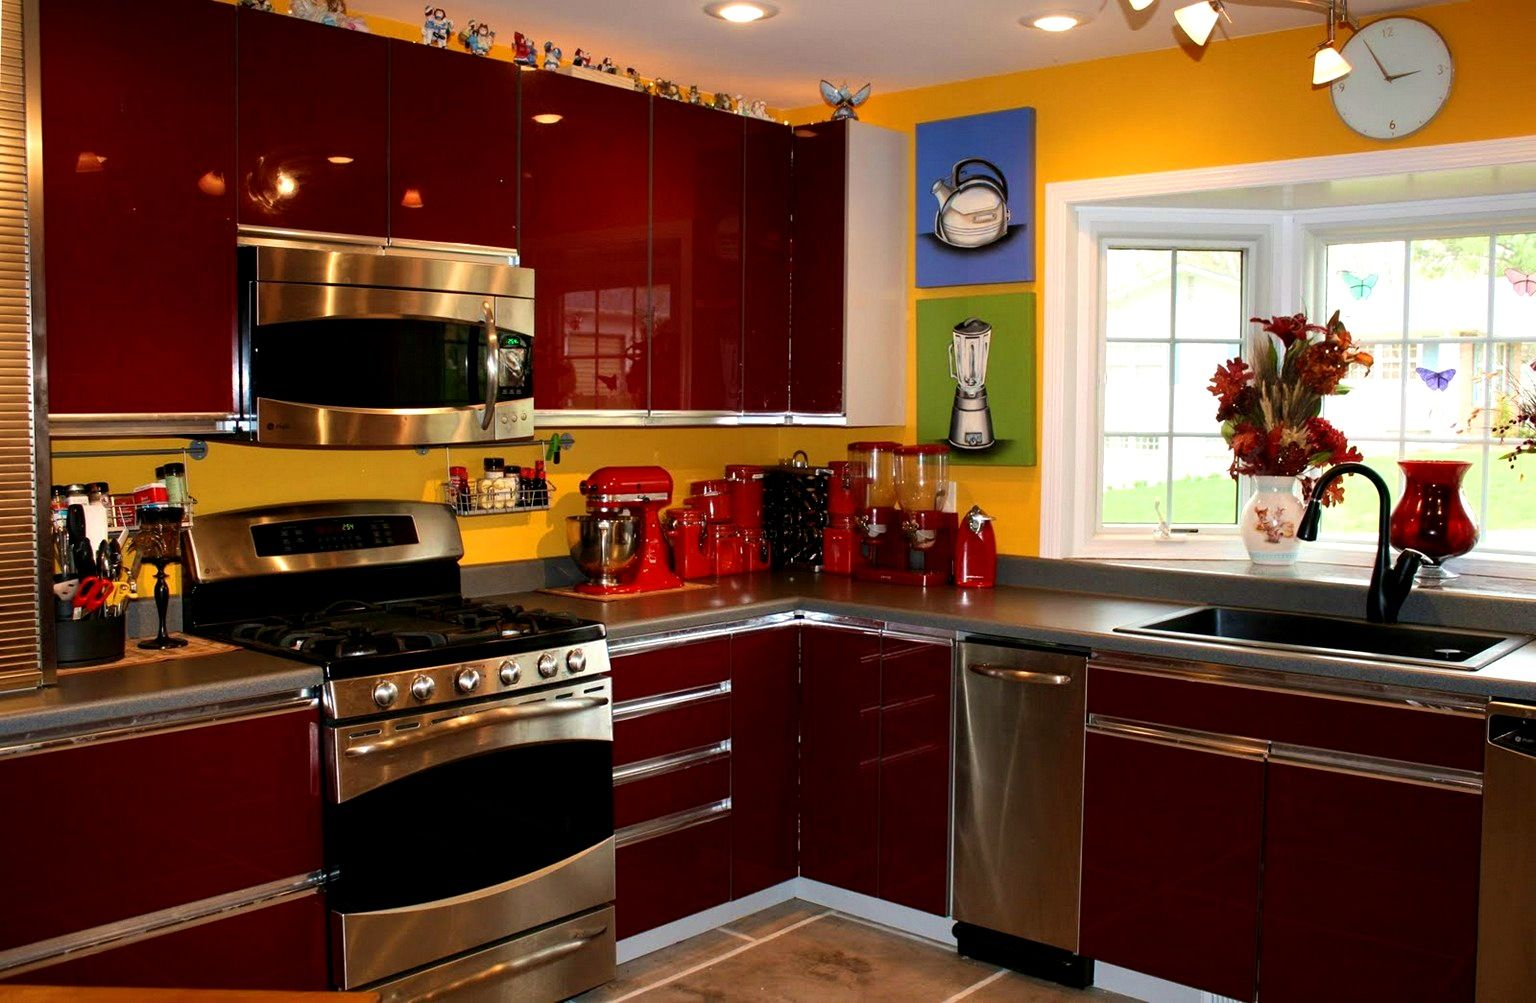 Accessories Picturesque Images About Red Black And White Kitchen Grey Walls Yellow Decorating Wallpape Black Kitchen Decor Kitchen Decor Sets Red Kitchen Walls